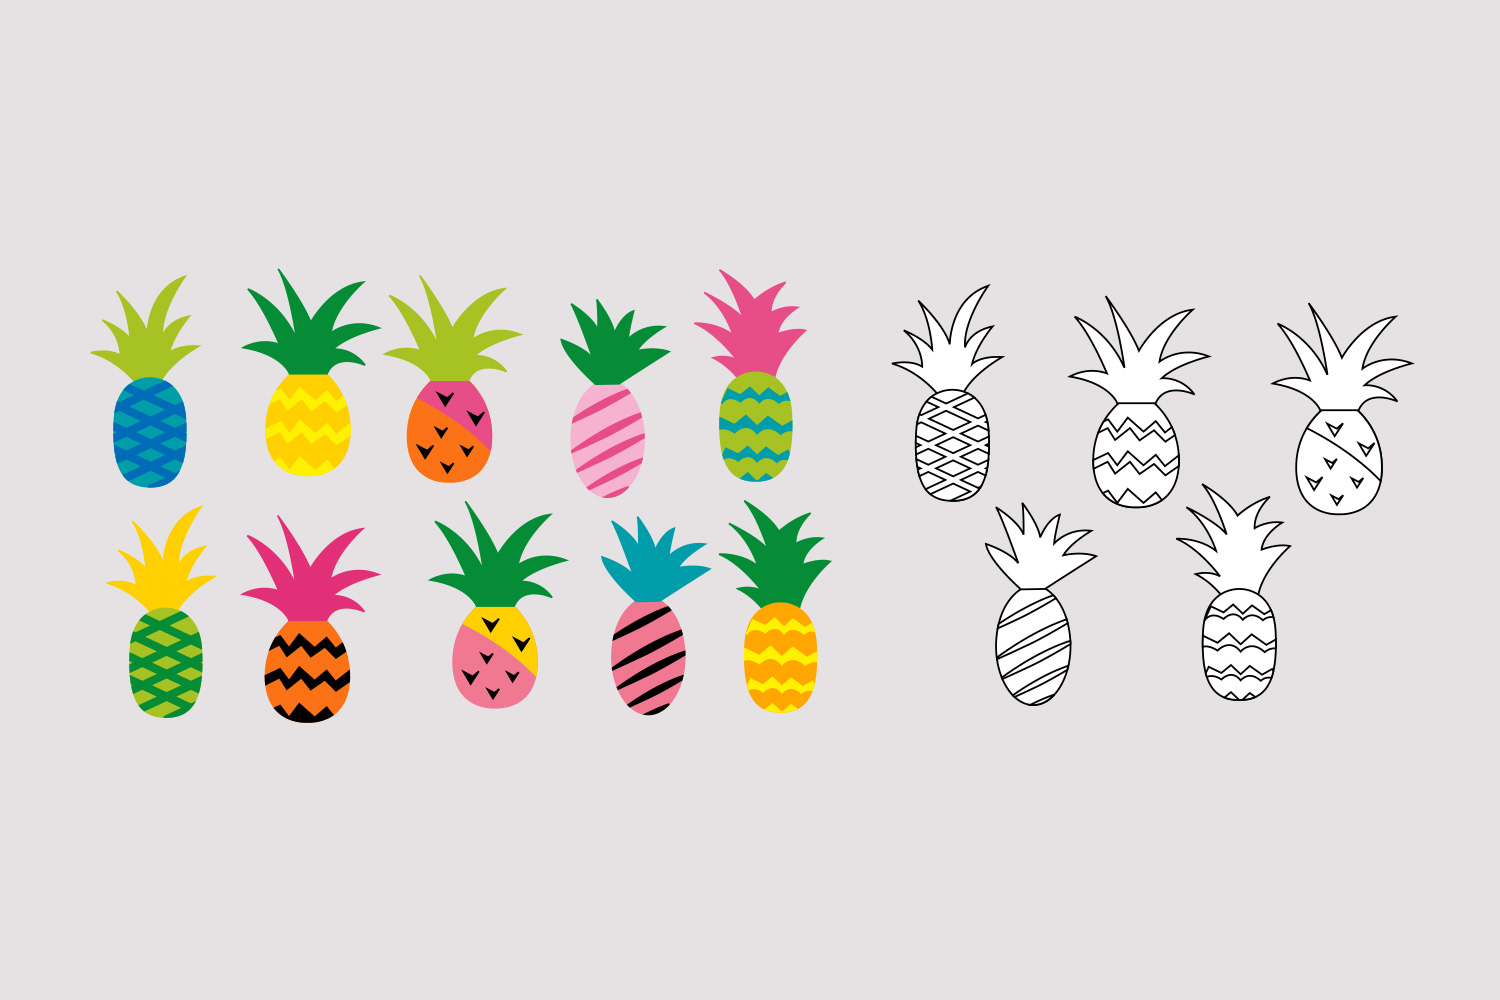 Colorful Pineapple clipart graphic / Funky Pineapples